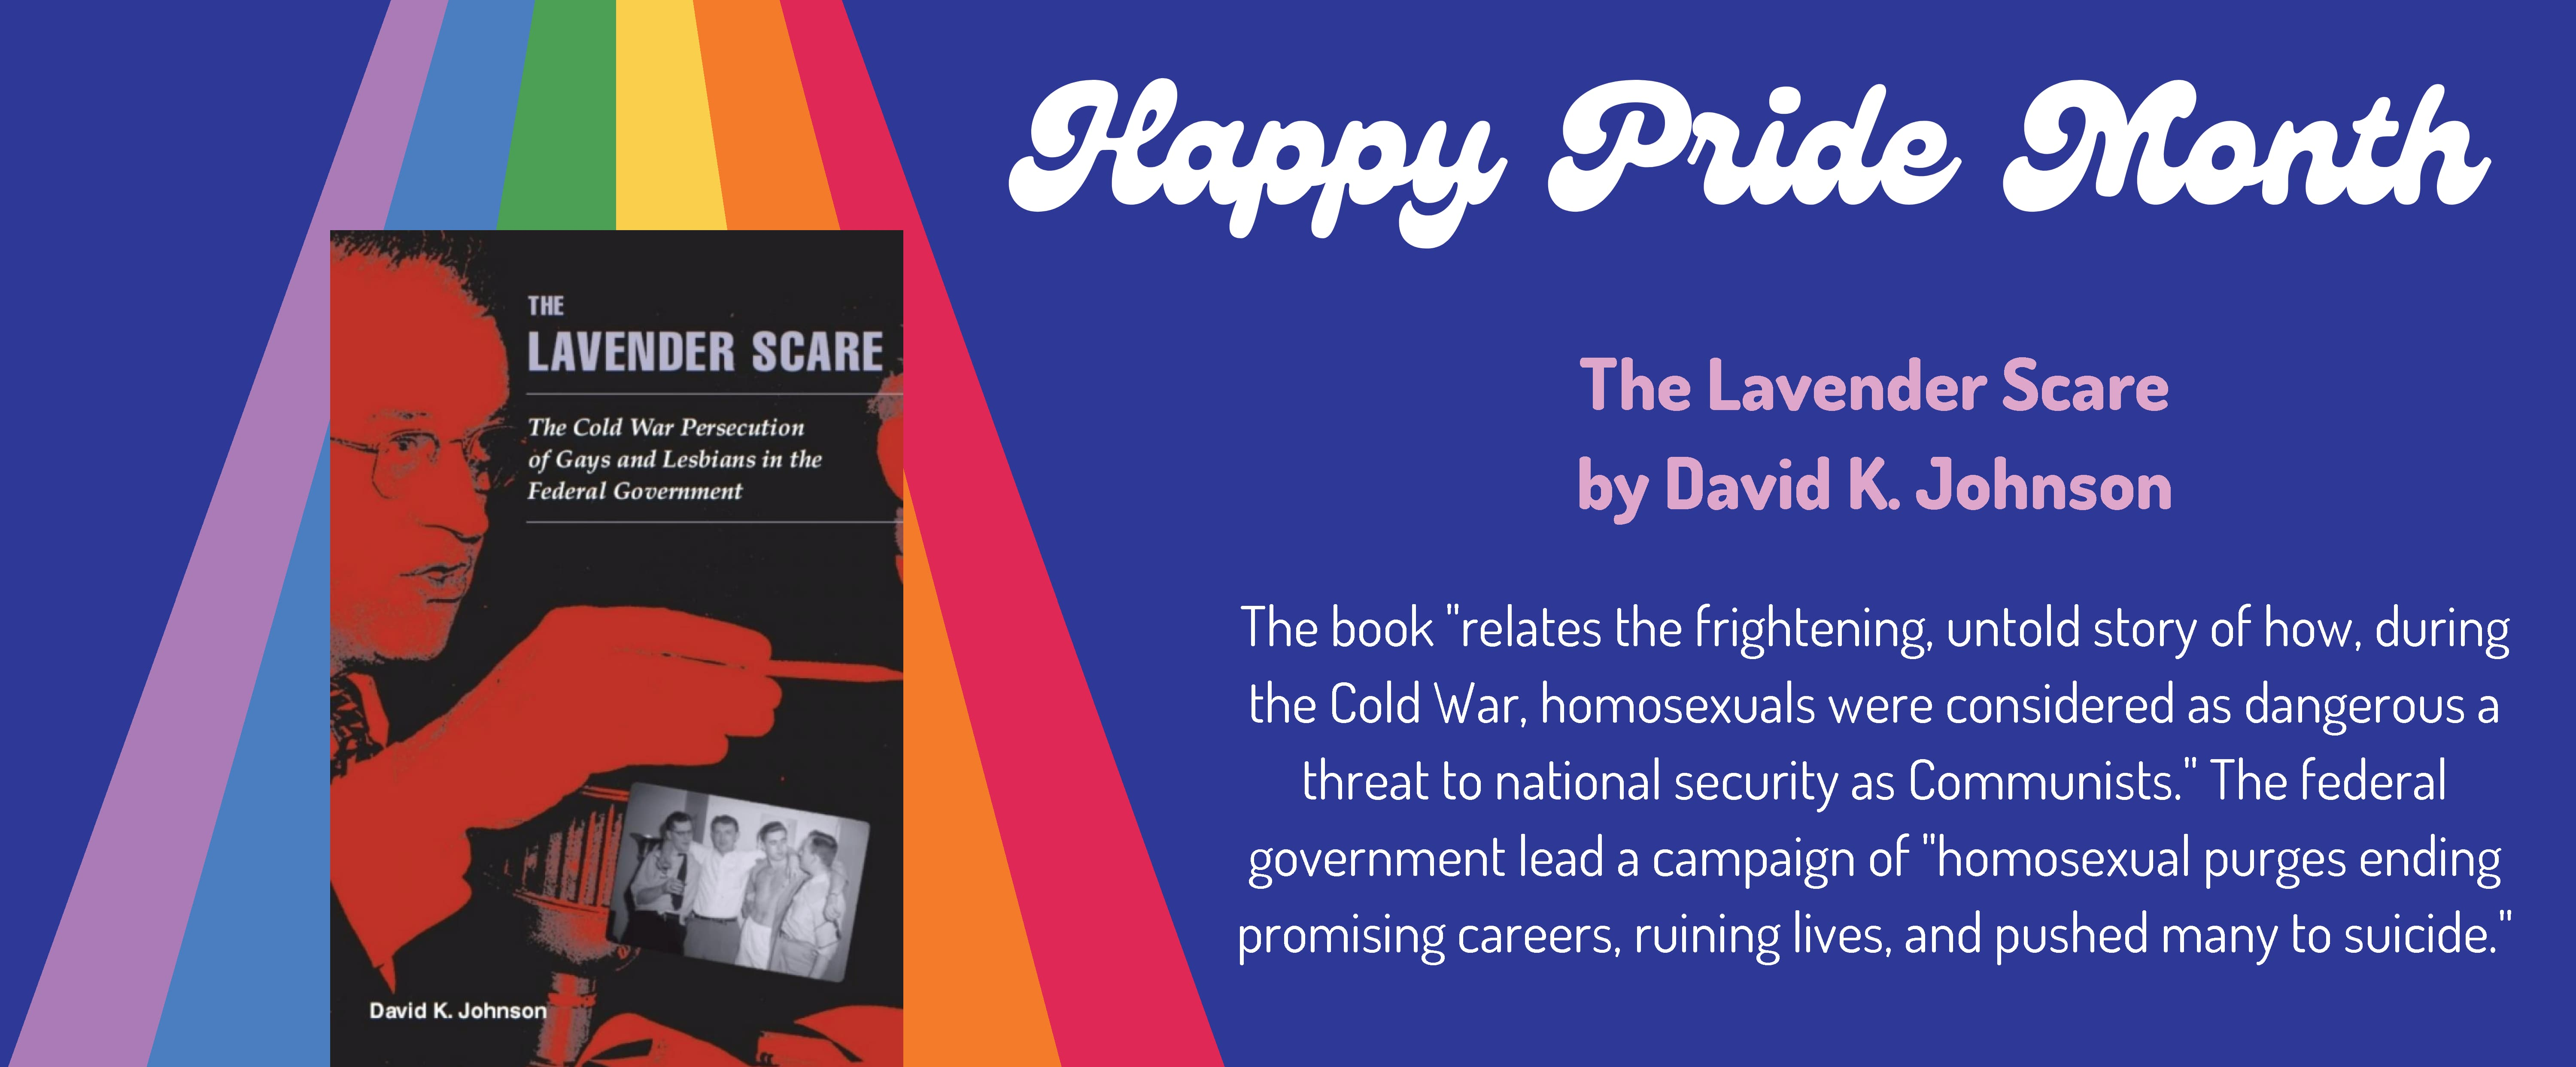 Rainbow and image of the book The Lavender Scare